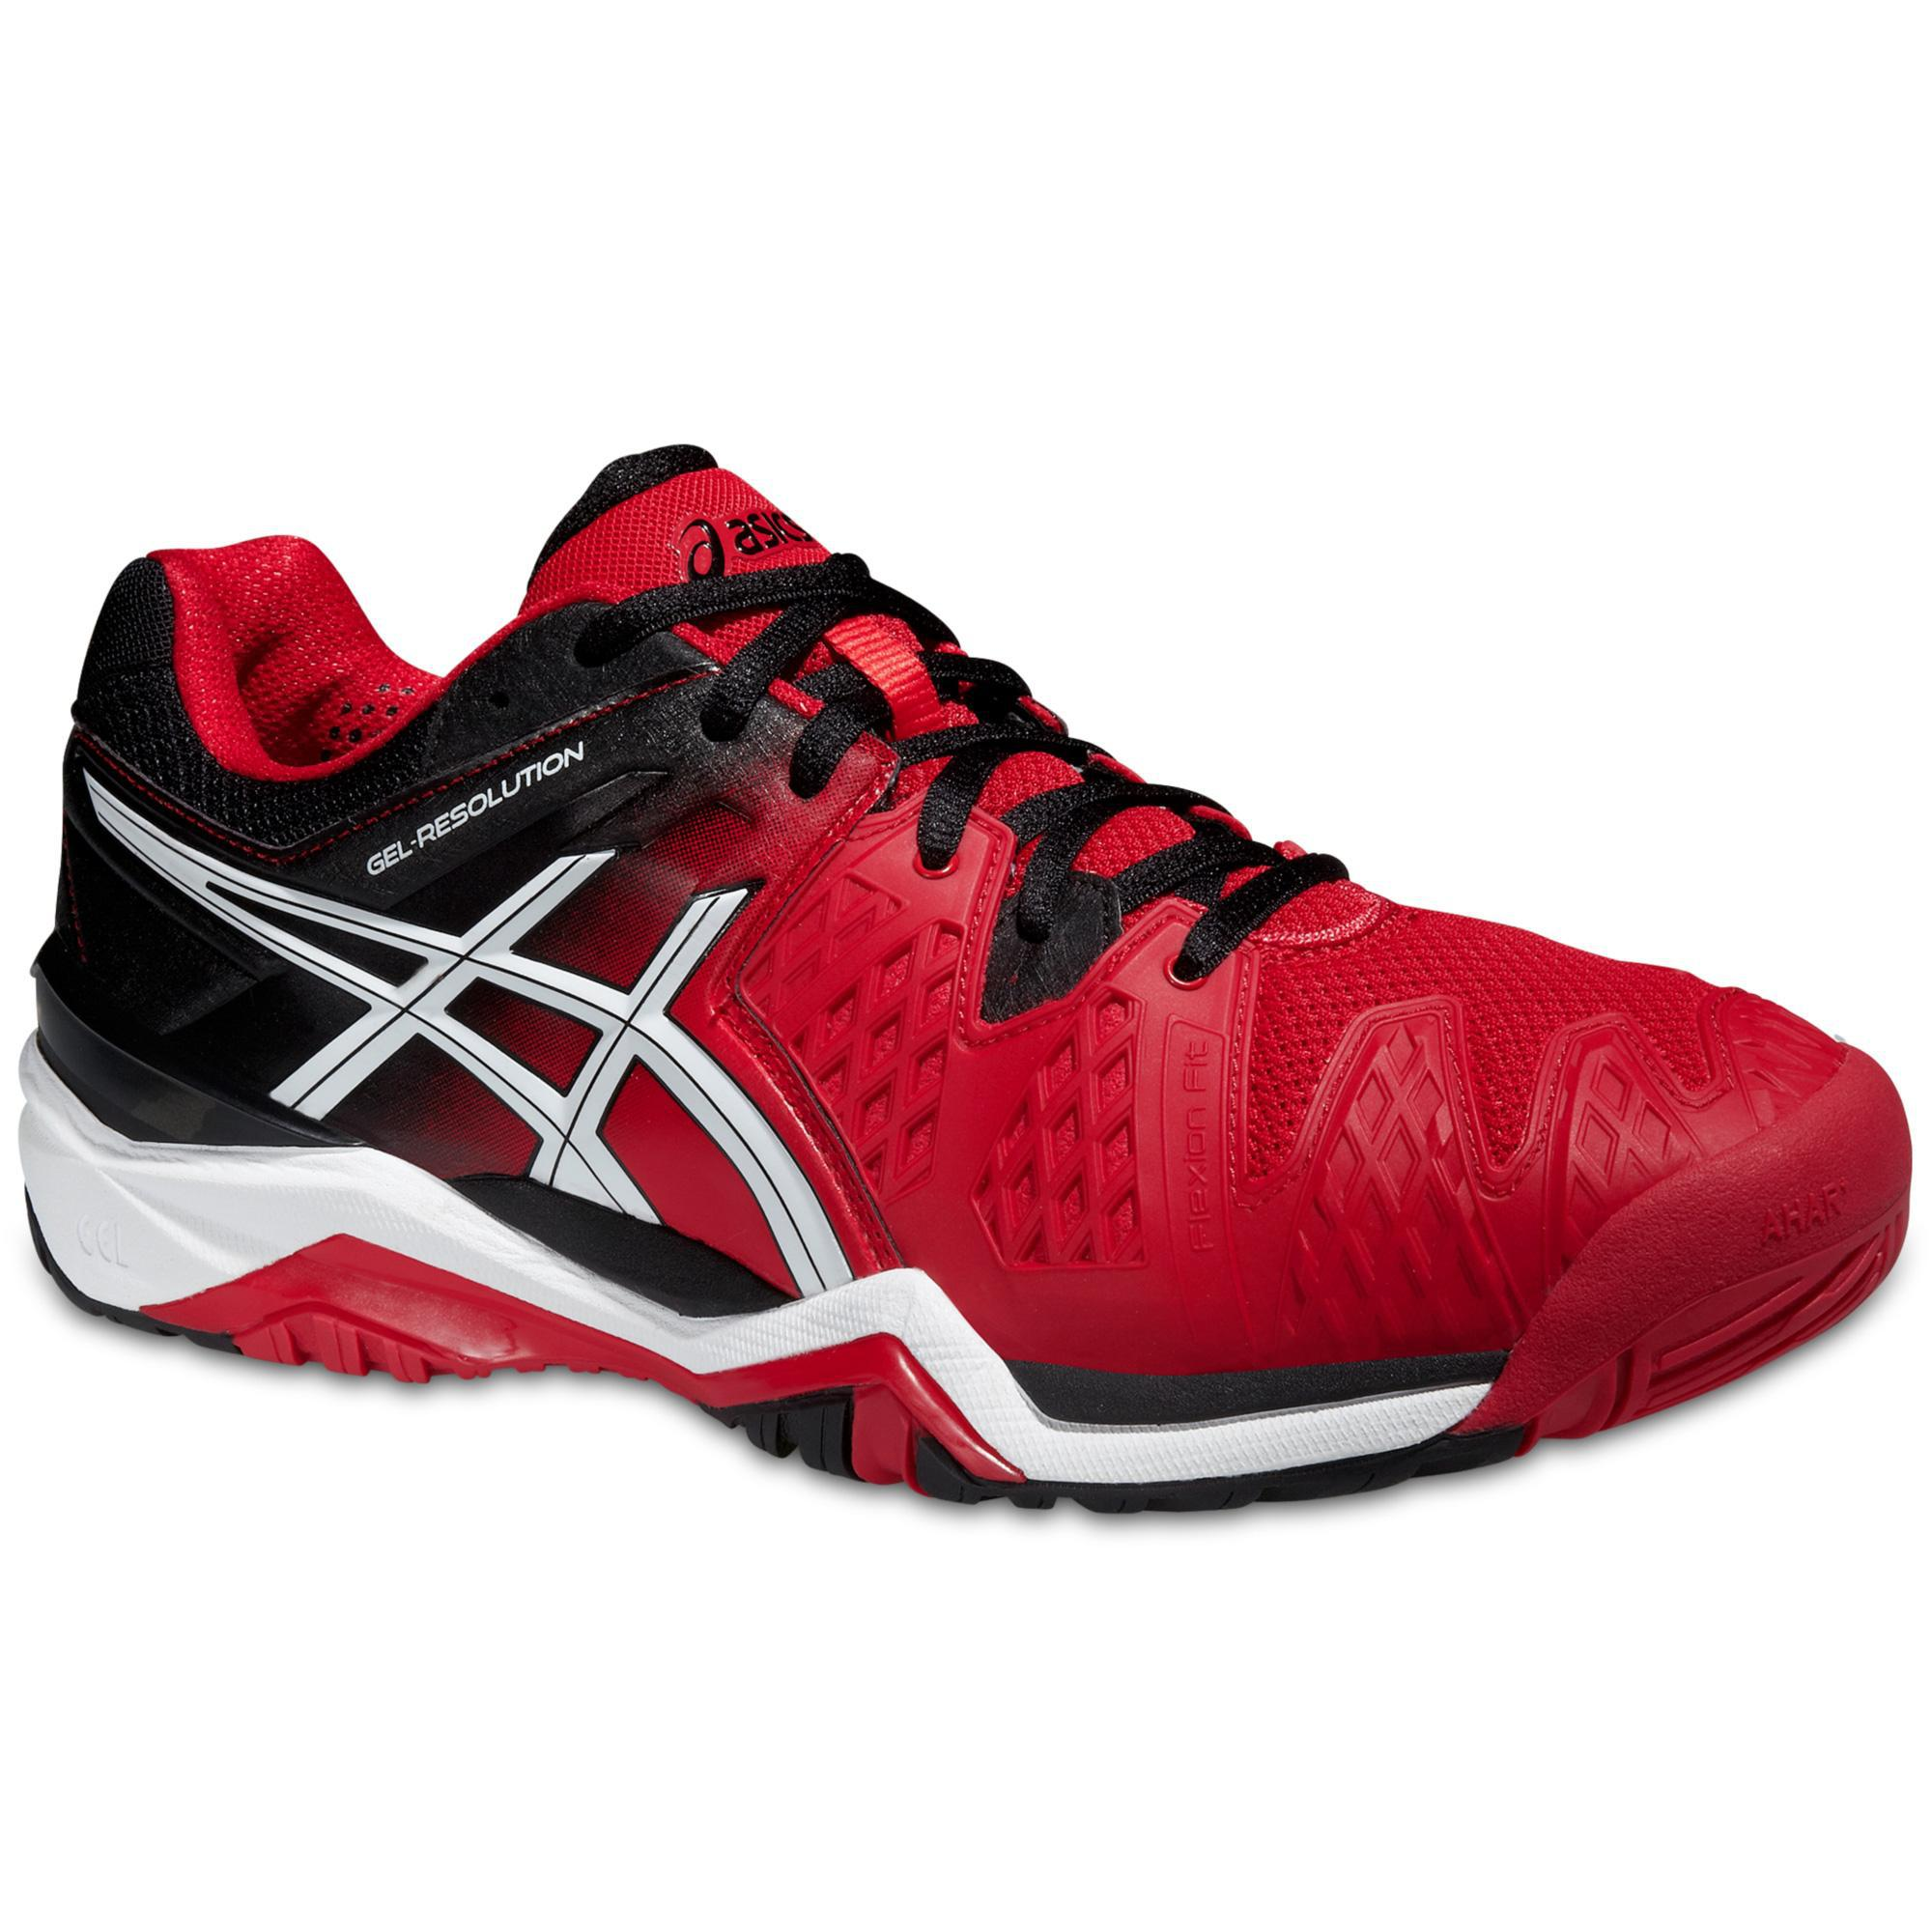 Raquettes 6 Asics Gel Resolution 6 Fiery Rouge Rouge// Noir/ Blanc 7ac6266 - kyomin.website